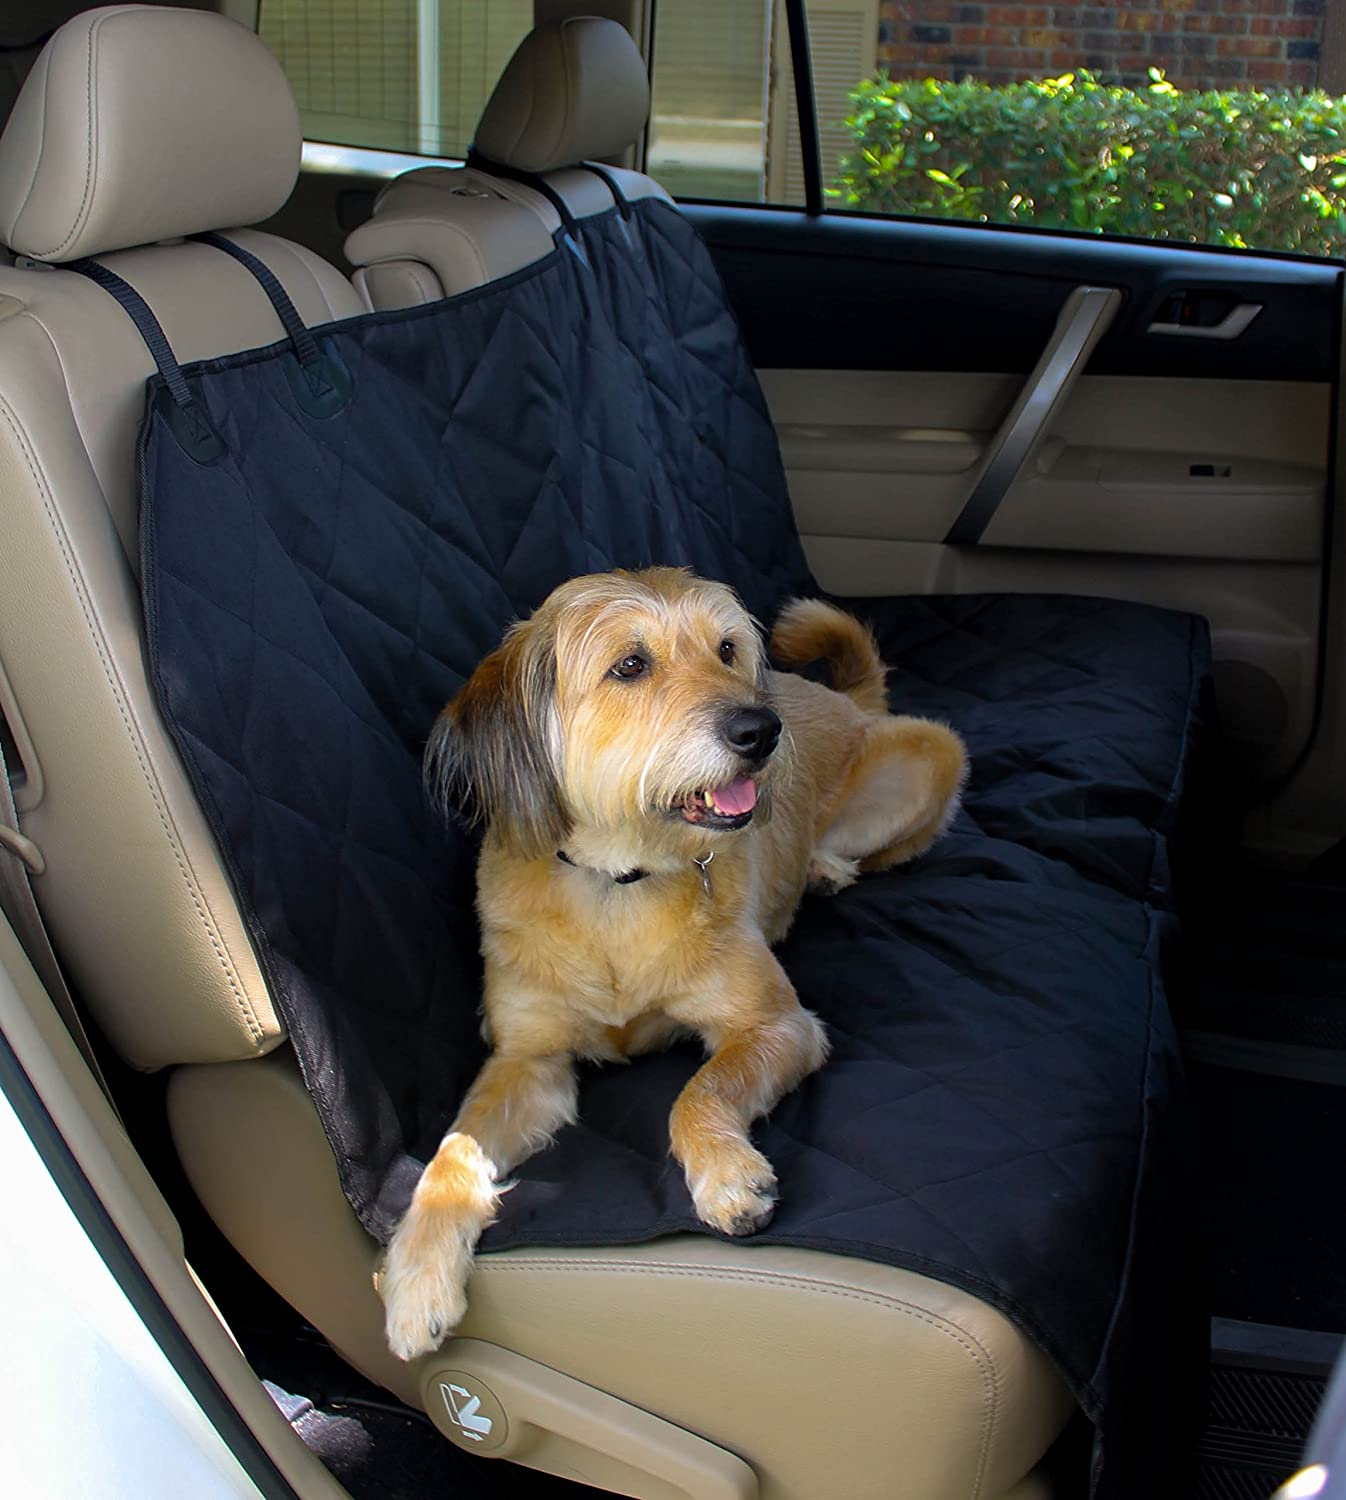 amazoncom pet seat cover for cars easy to clean quilted waterproof material velcro seat belt openings non slip silicone backing and seat anchors